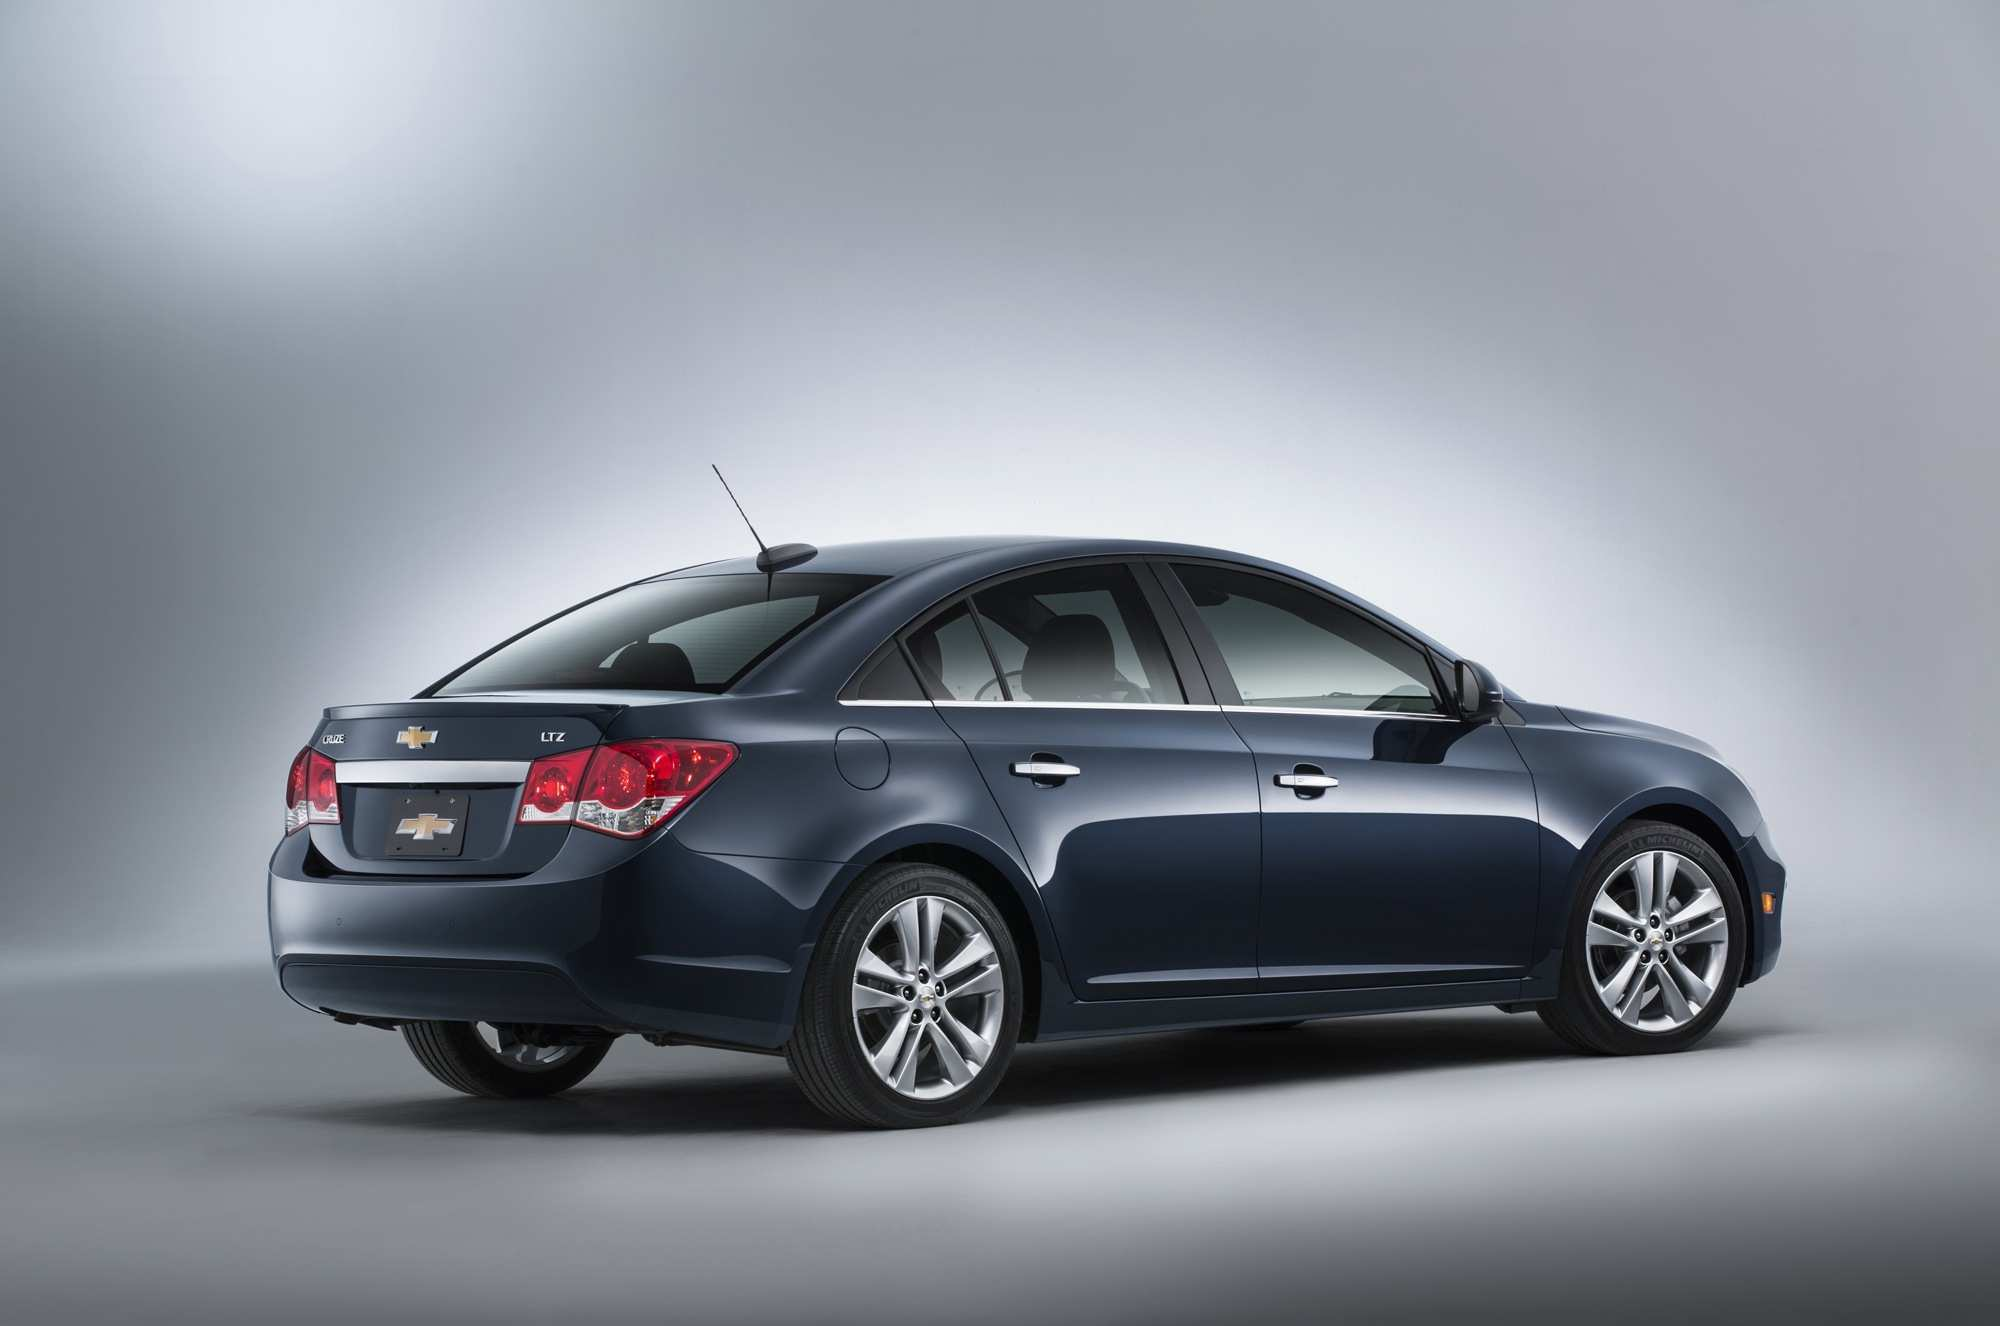 97 The Best 2020 Chevrolet Cruze Concept And Review